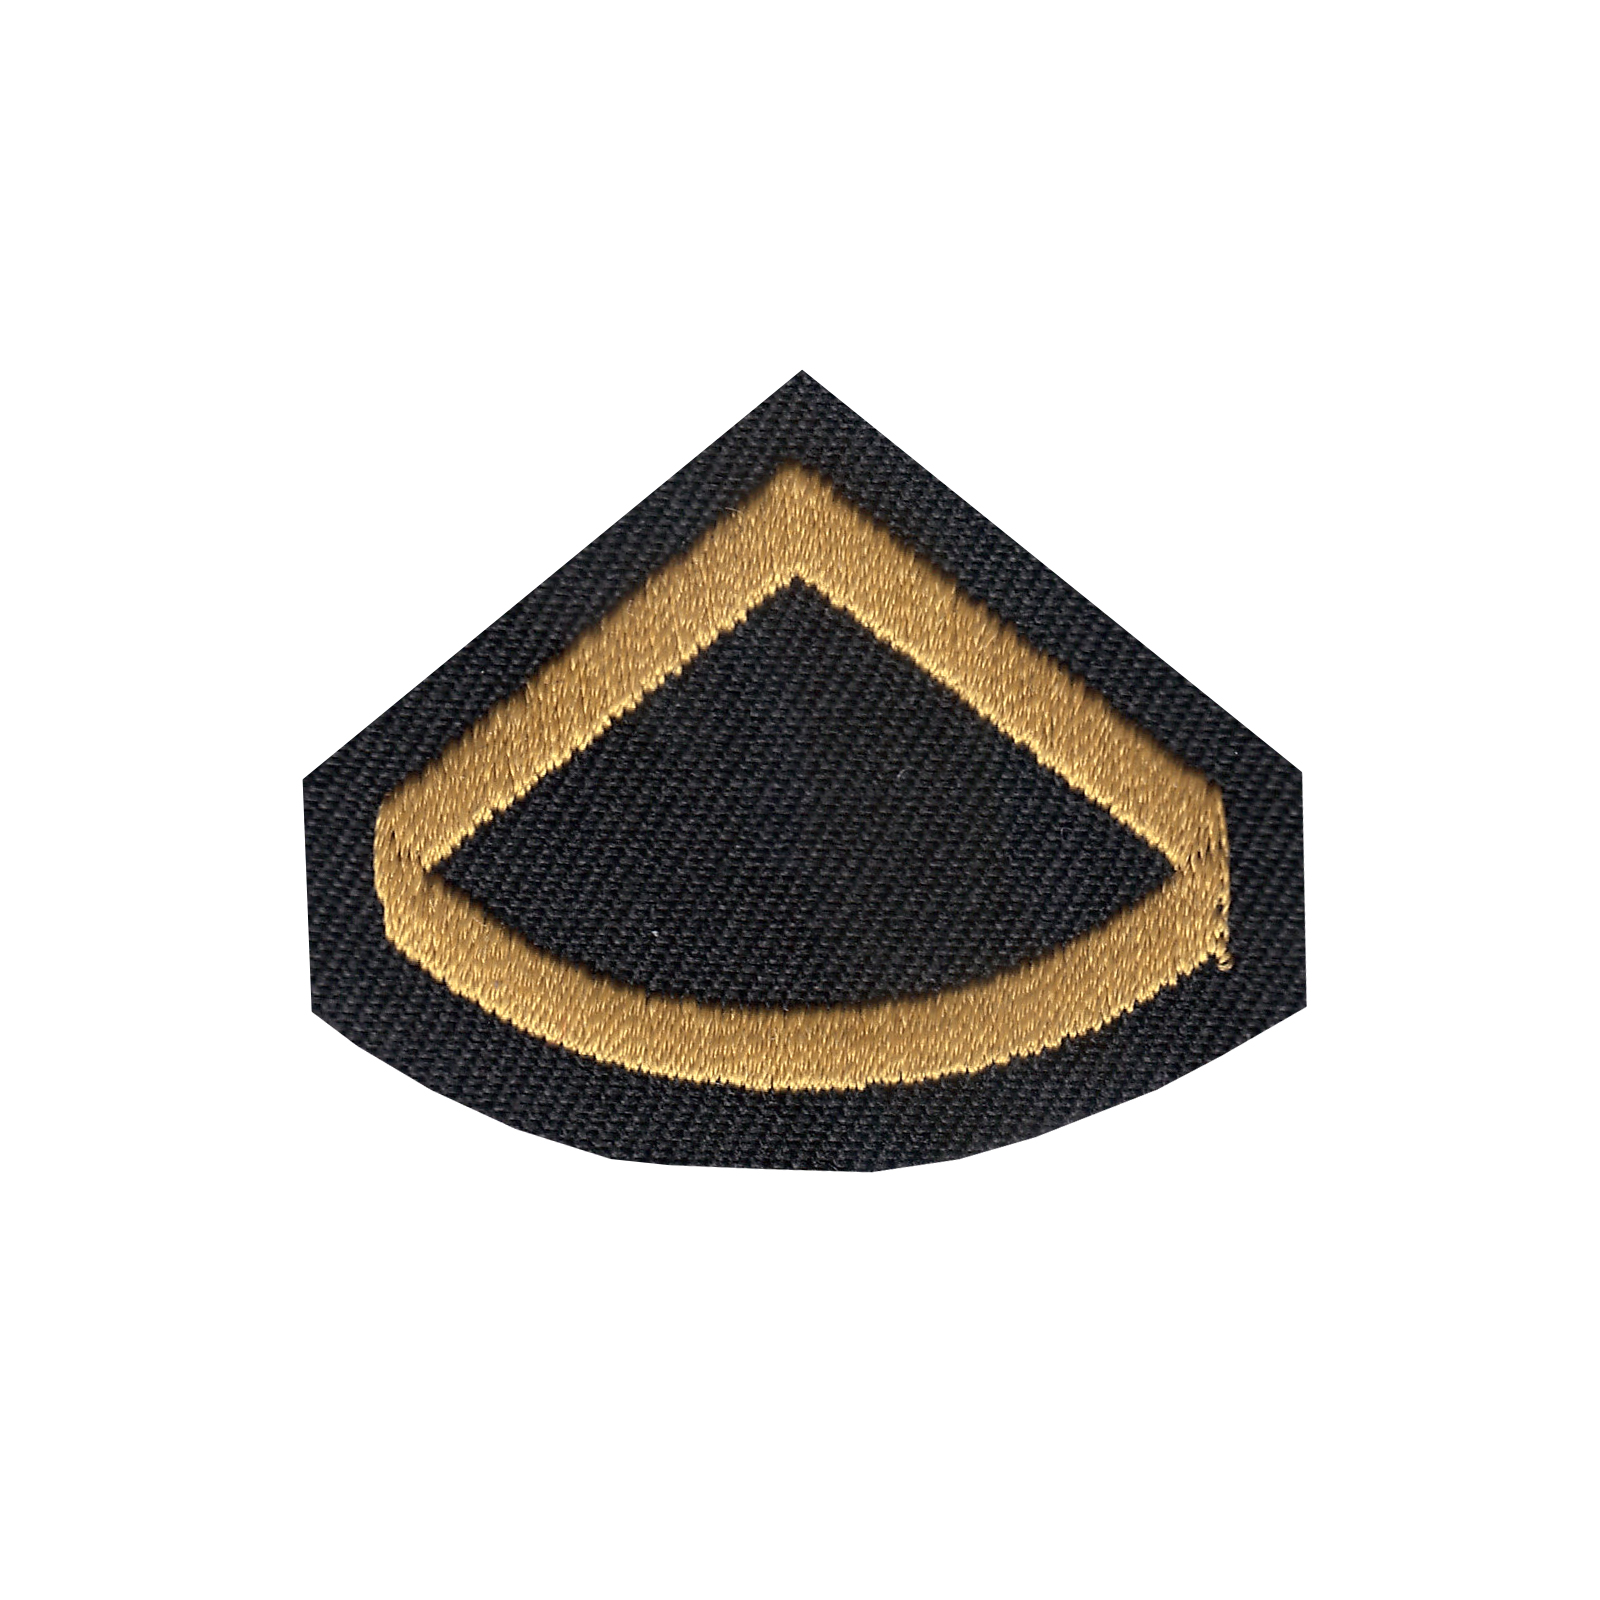 Private First Class Iron On Applique Patch